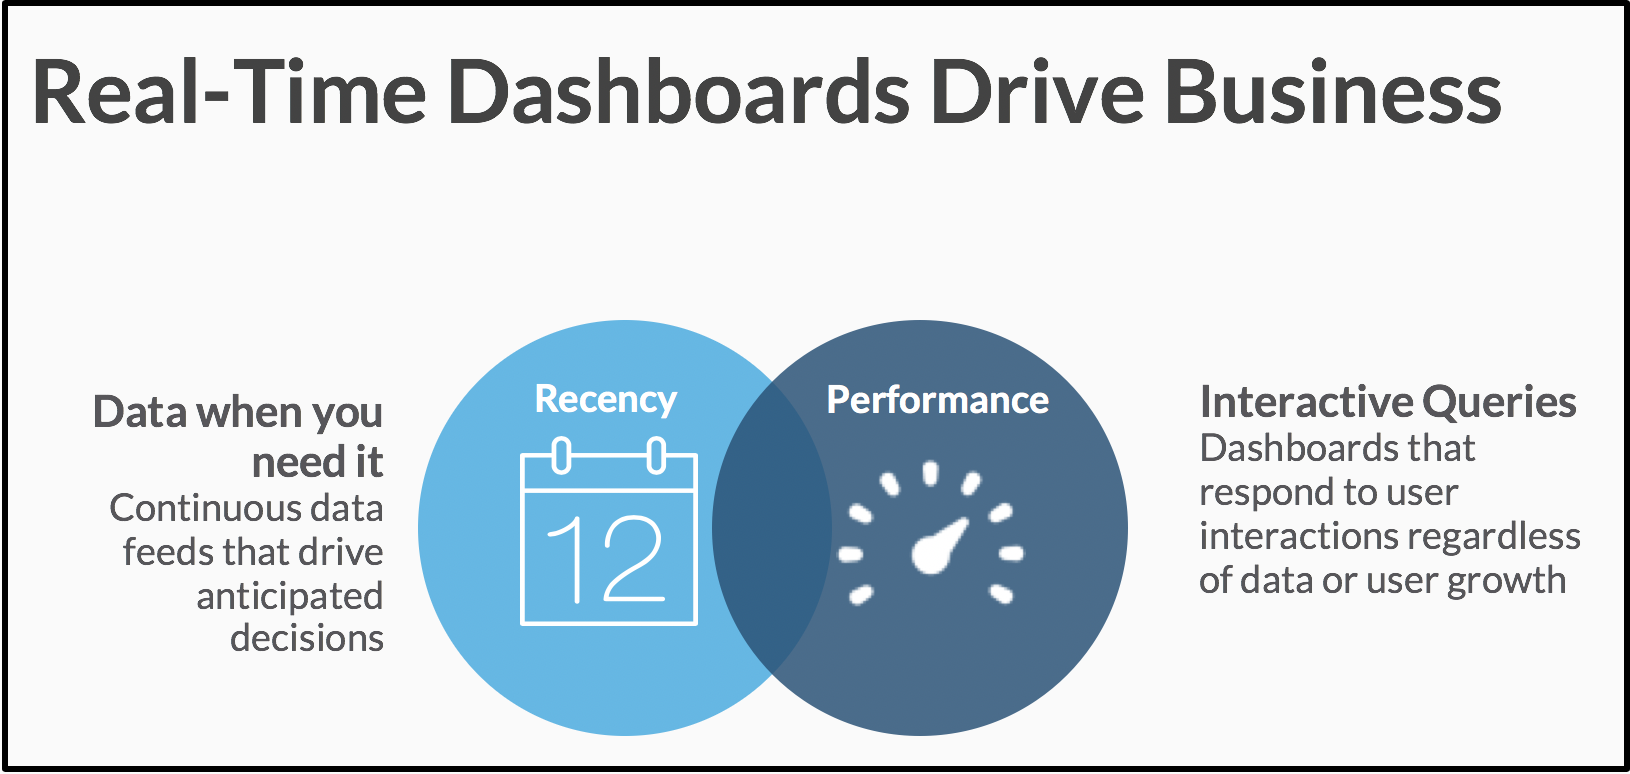 Real-time dashboards have both display and query capability.